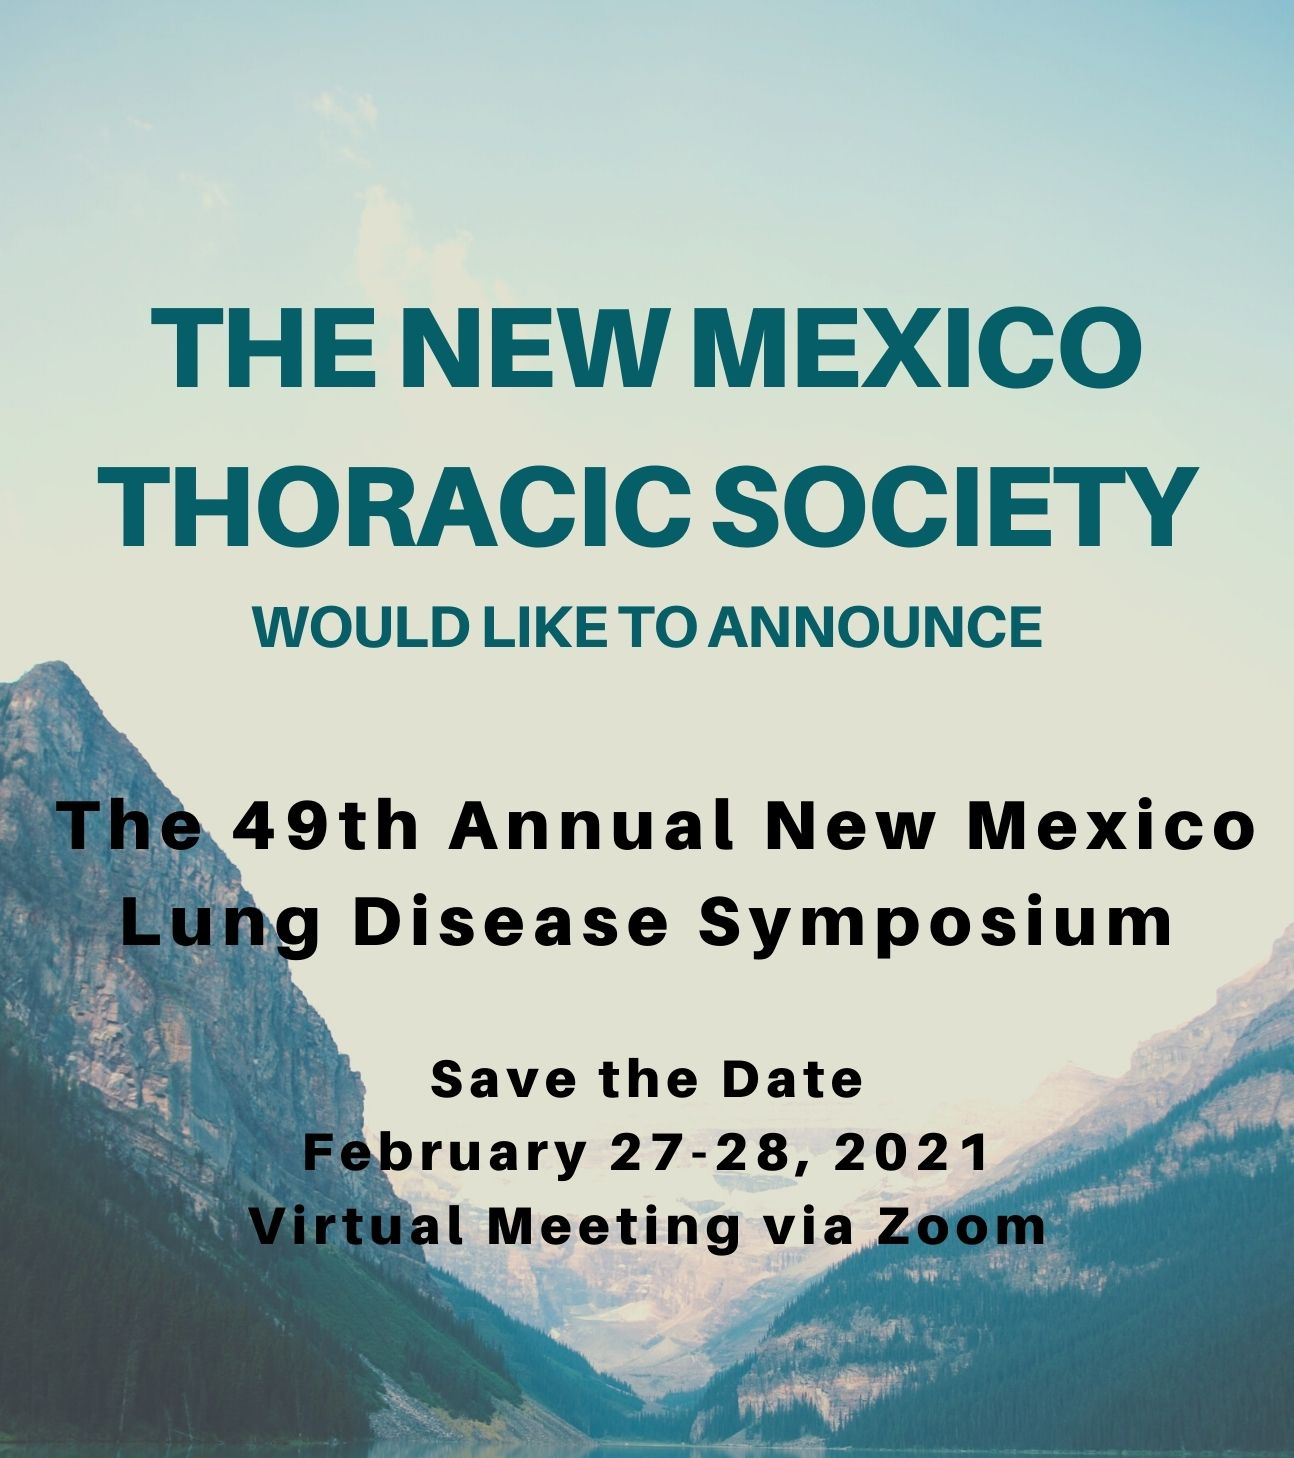 The New Mexico Thoracic Society would like to announce the  49th Annual New Mexico Lung Disease Symposium    Saturday & Sunday, February 27 - 28, 2020.  Event will be Virtual Meeting via Zoom.